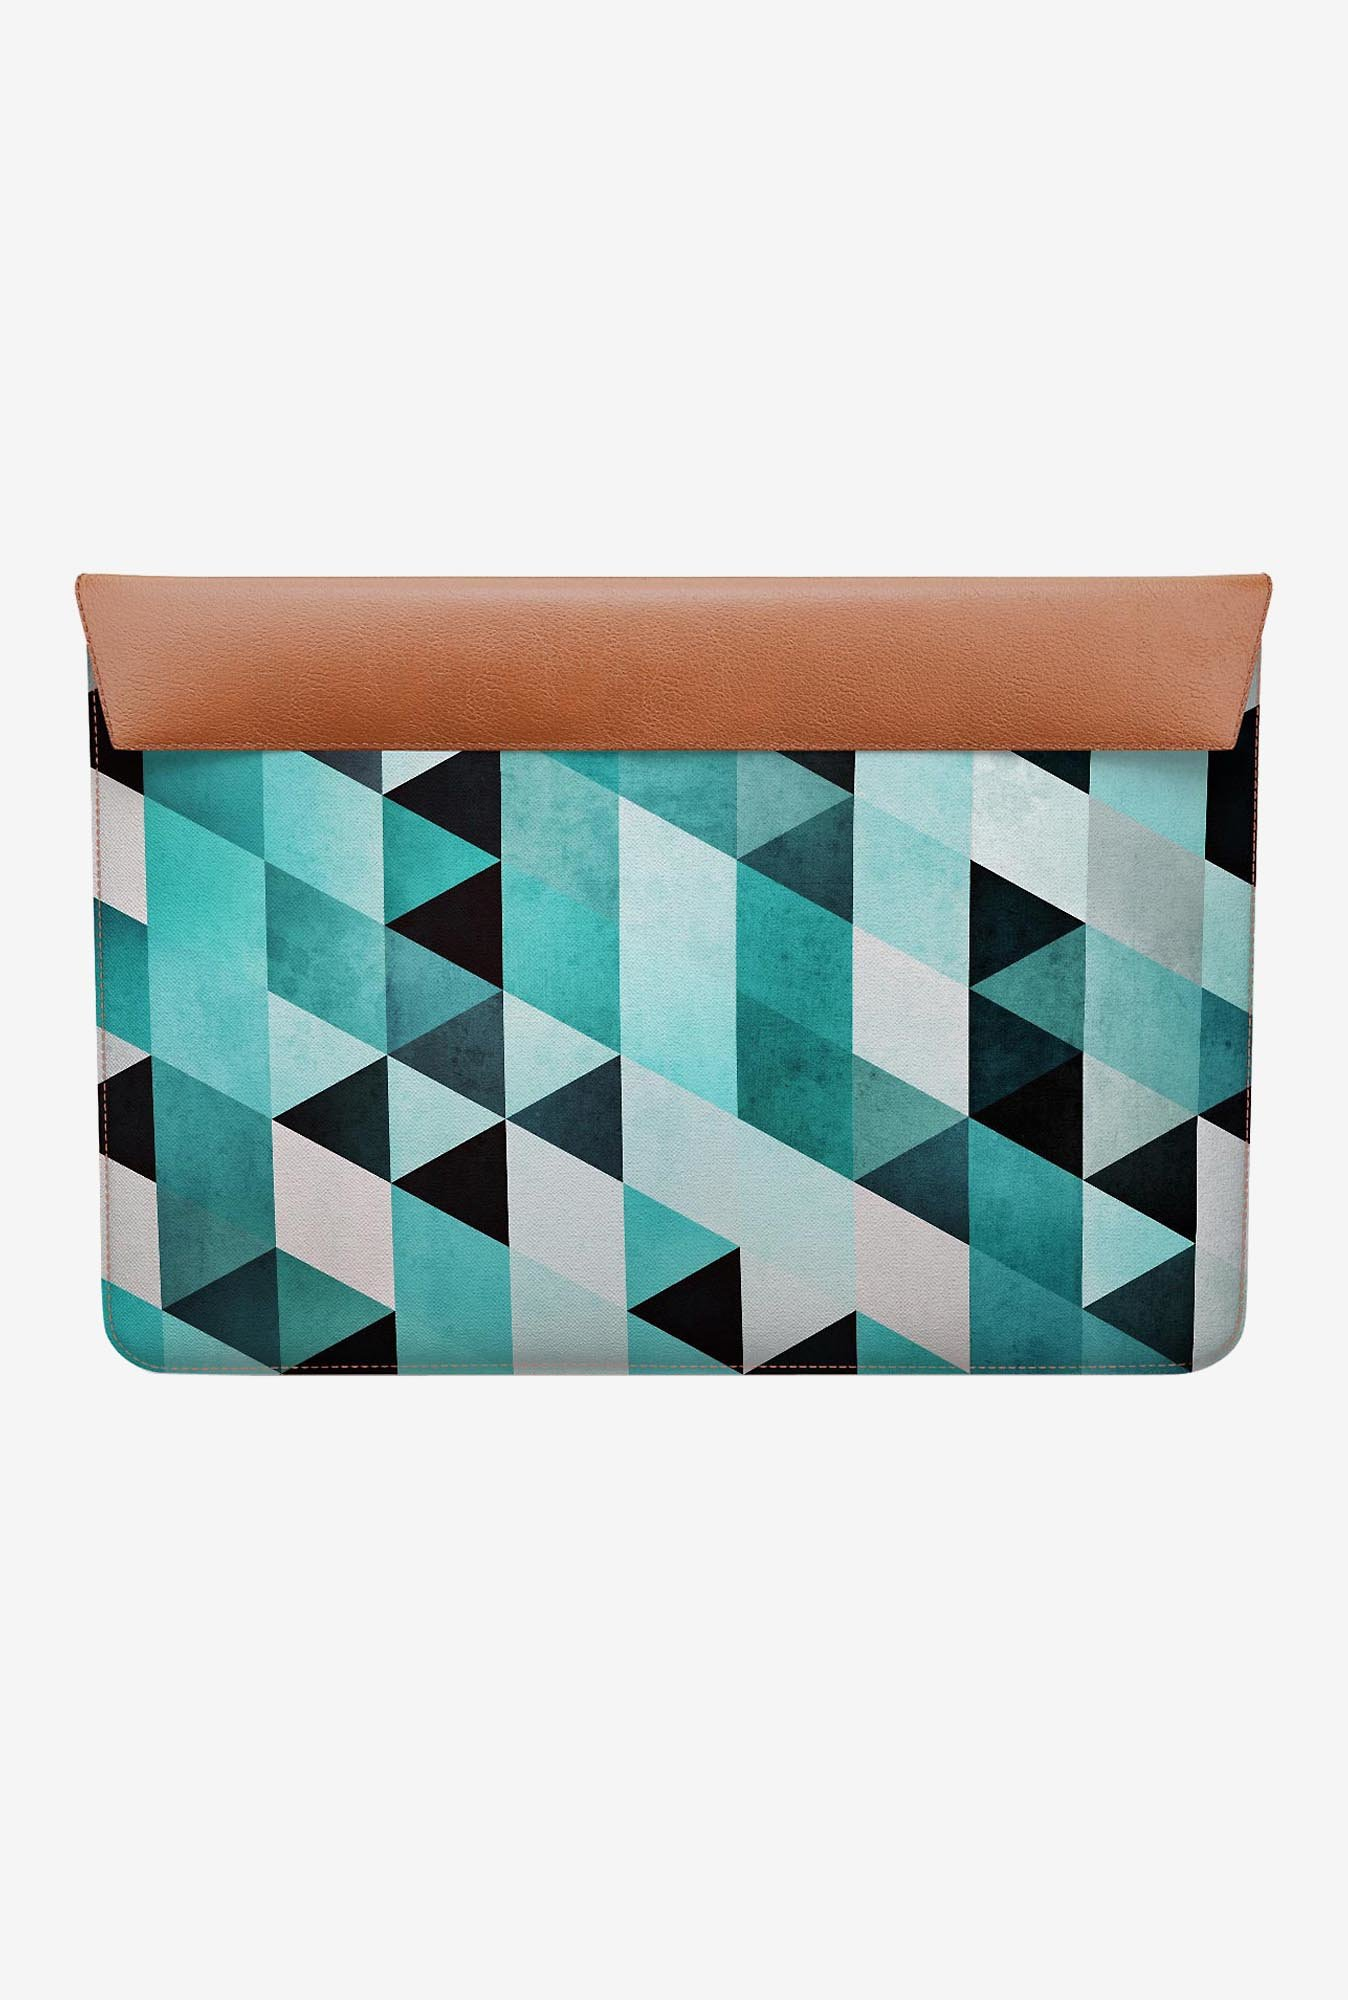 "DailyObjects Syb Zyyro Macbook Air 11"" Envelope Sleeve"